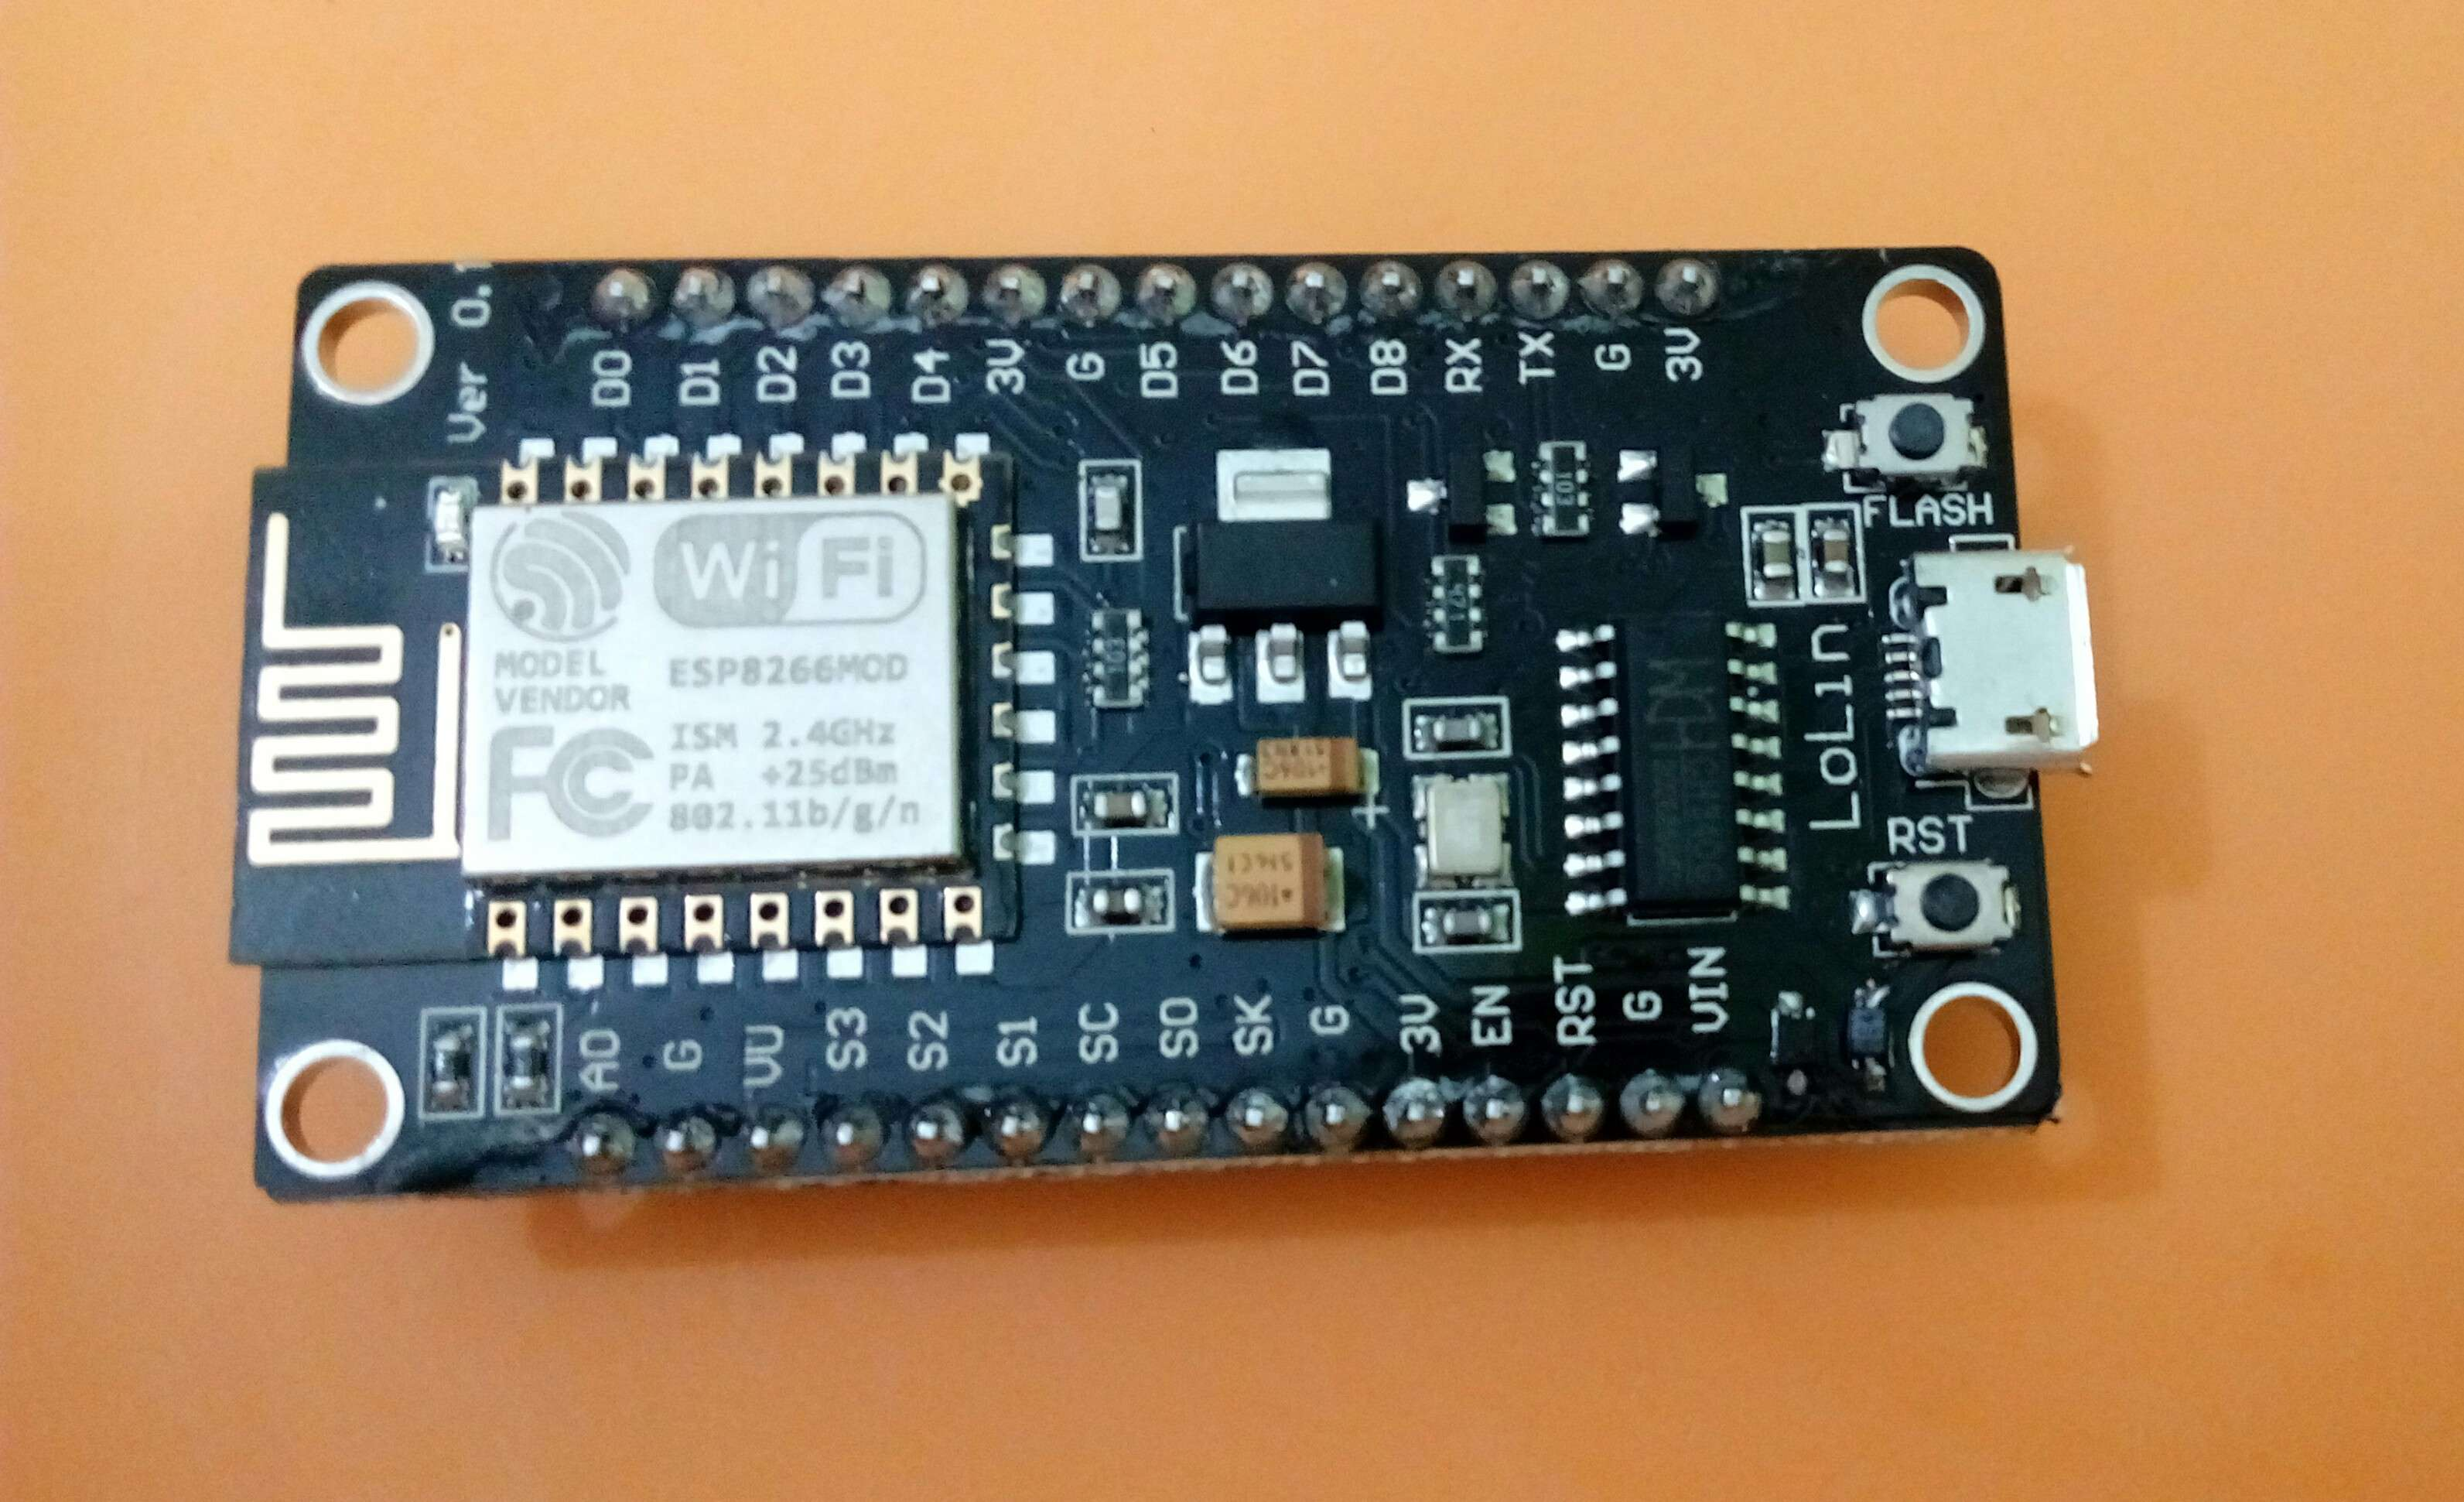 What is NodeMcu ESP8266 ?